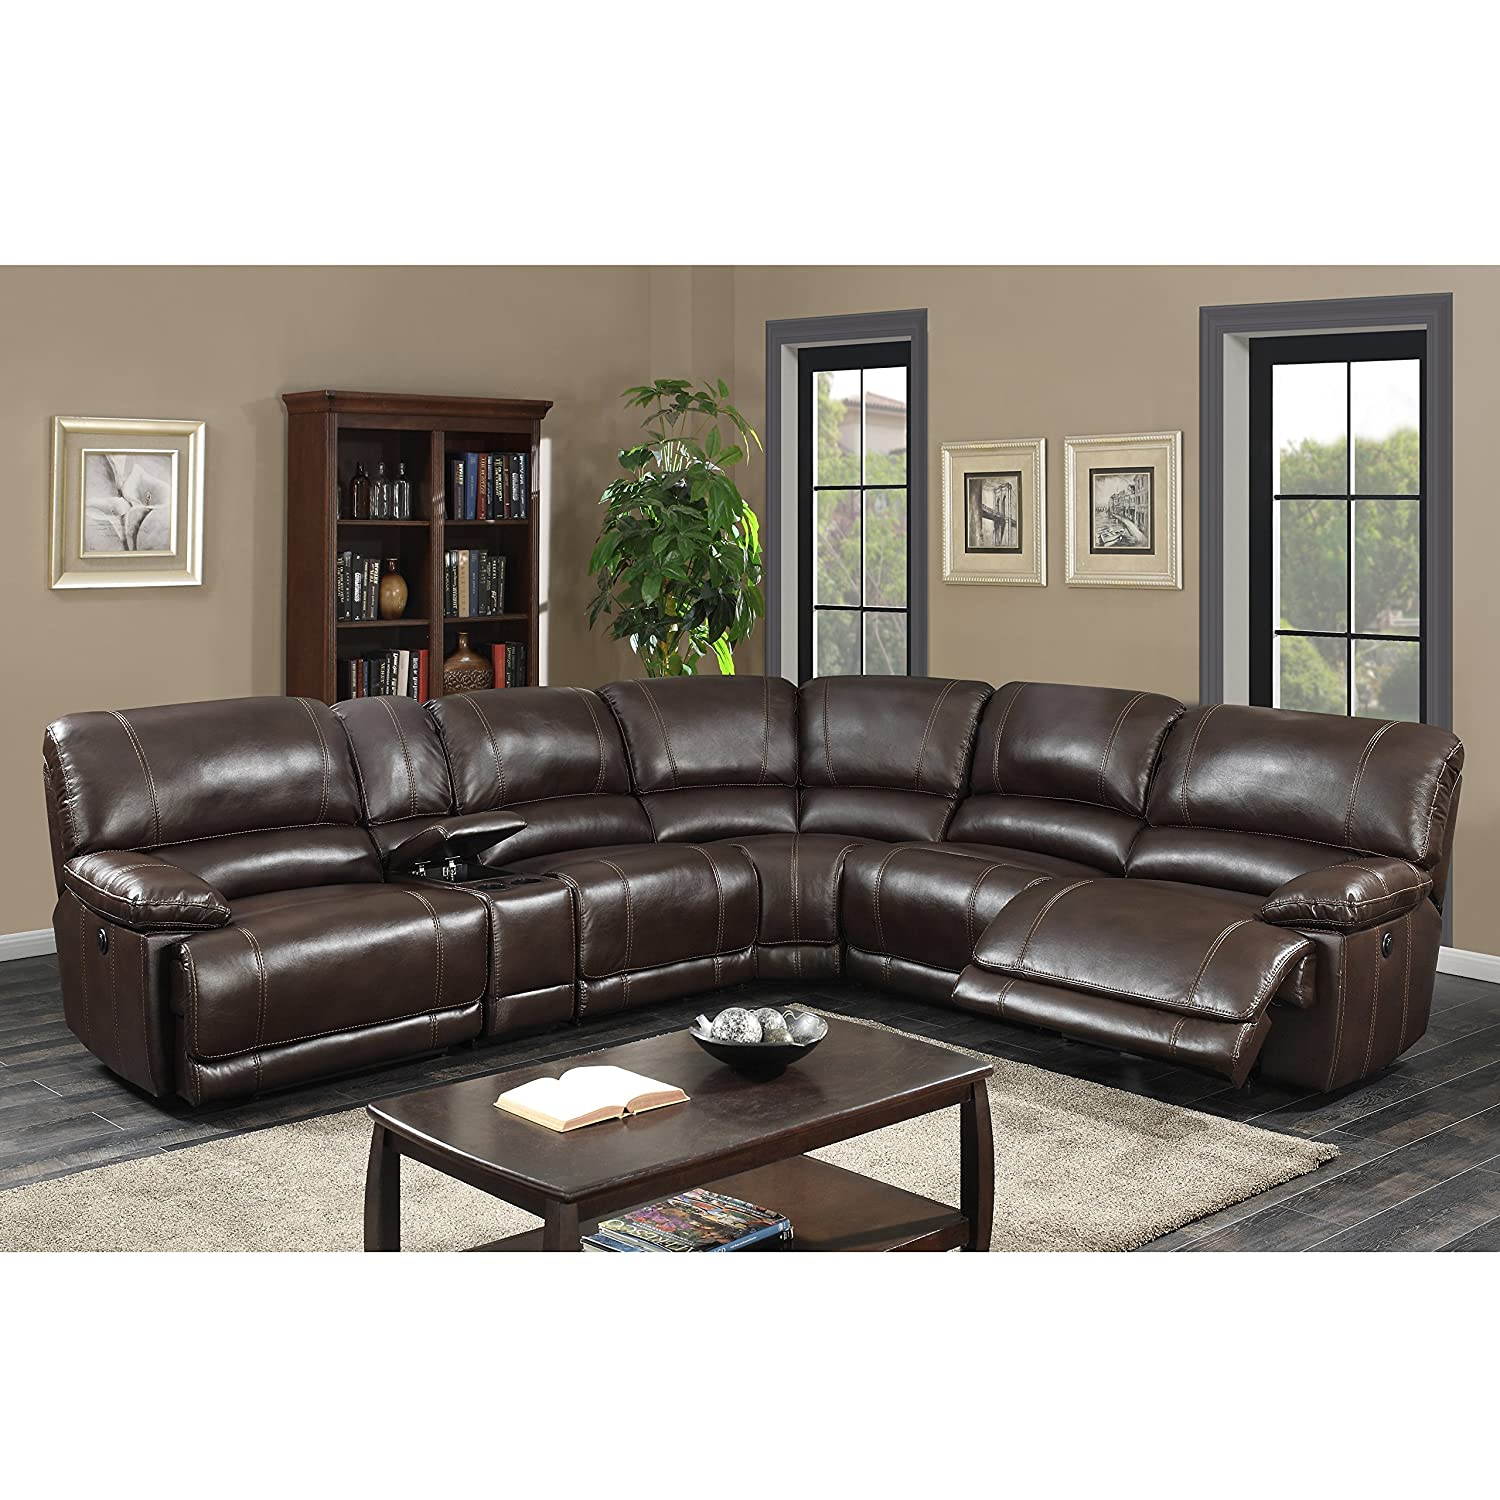 Super Ac Pacific Olivia Transitional 6 Piece Sectional With 2 Power 1 Armless Recliner And Charging Storage Console Table Holder Dark Brown Ibusinesslaw Wood Chair Design Ideas Ibusinesslaworg